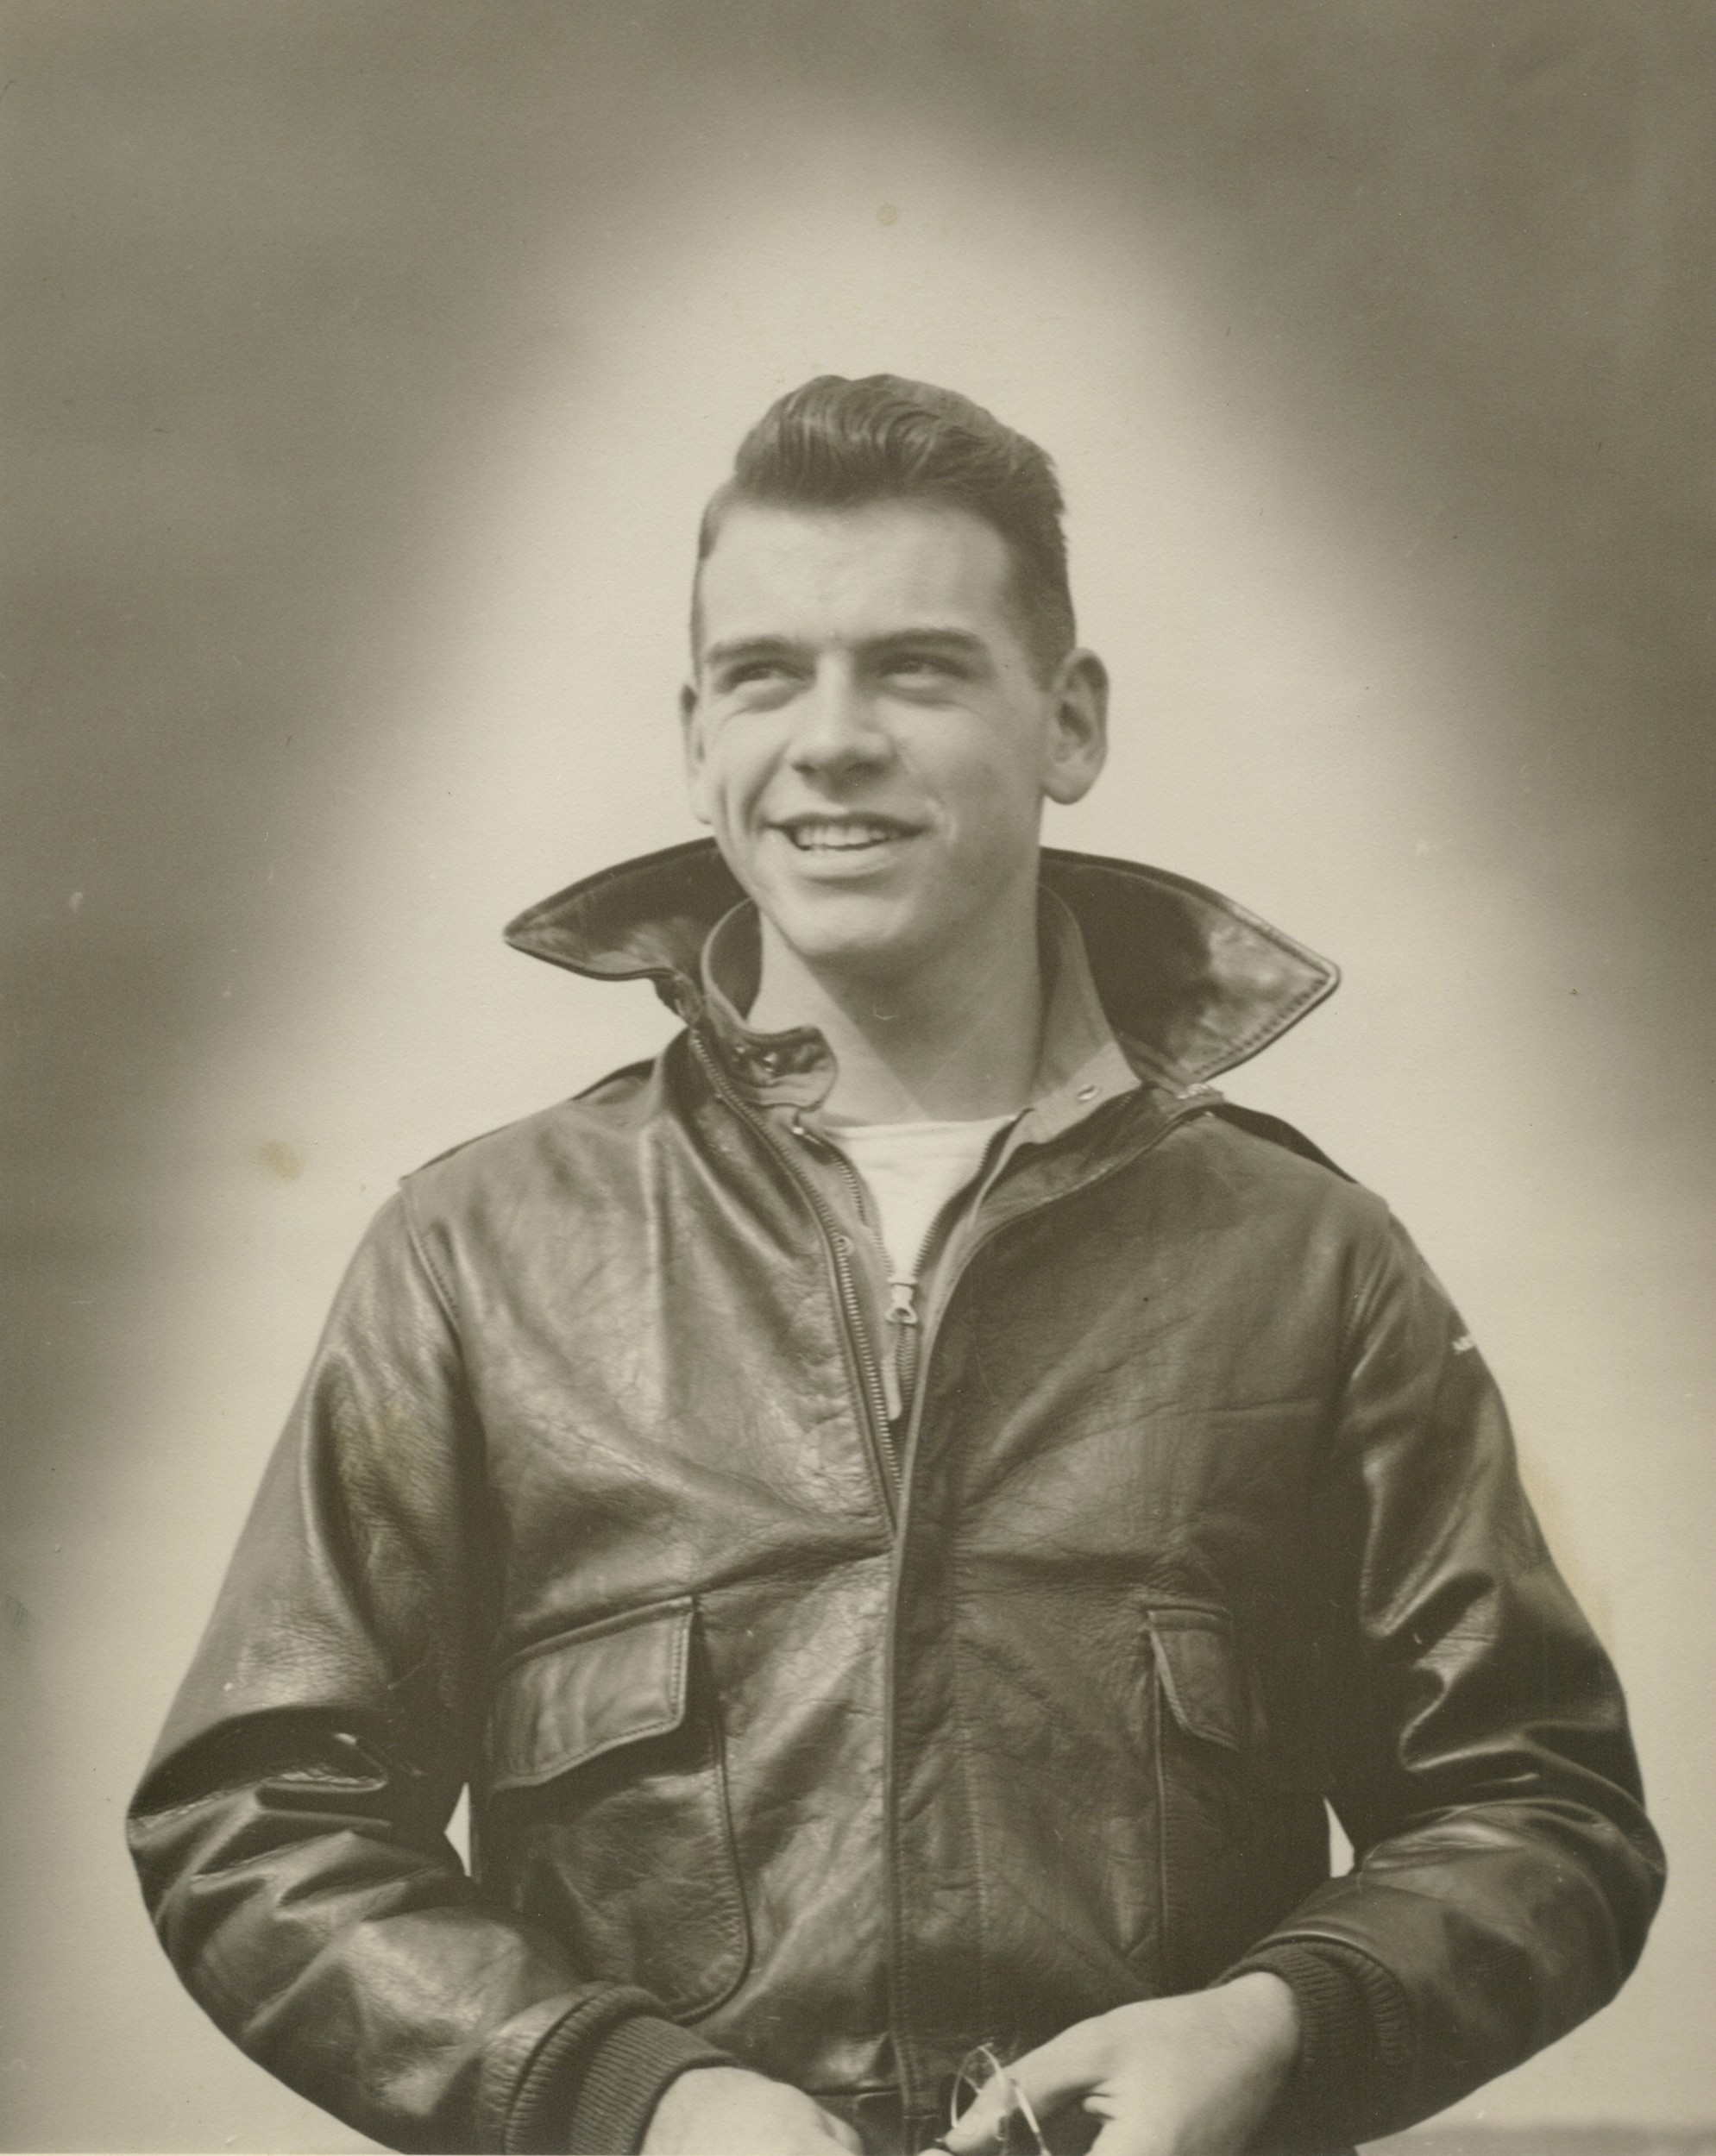 During World War II, Ros Bosworth Jr. served in the Army Air Force and was in the combat air crew training program when the war ended.